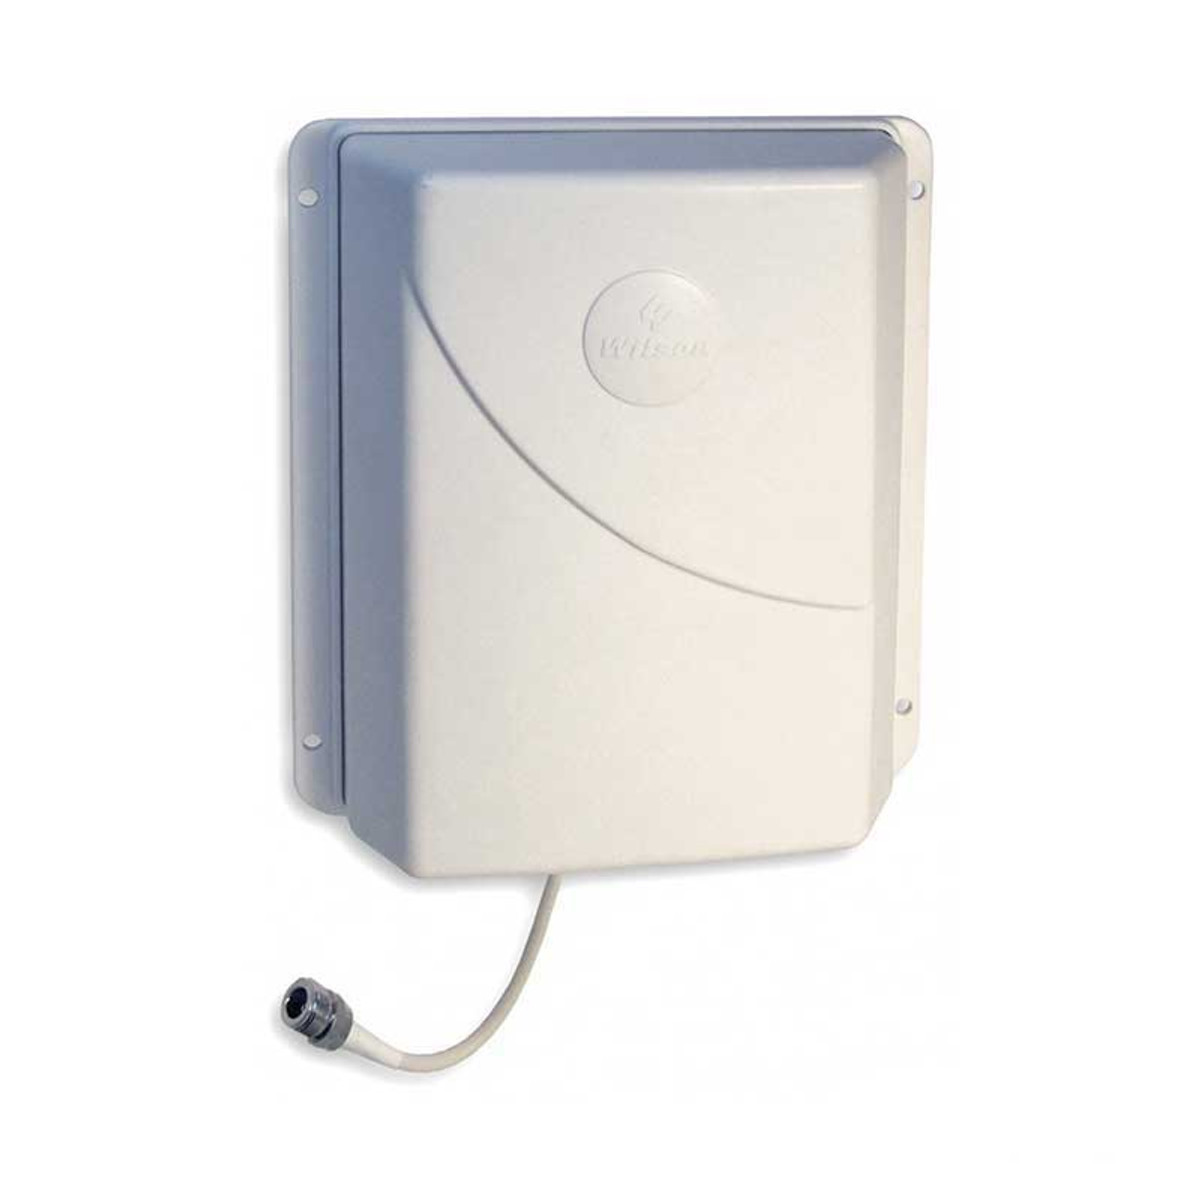 Wilson 304451 Ceiling Mount Panel Antenna 700-2700 MHz 50 Ohms Multi Band, shown with mount installed